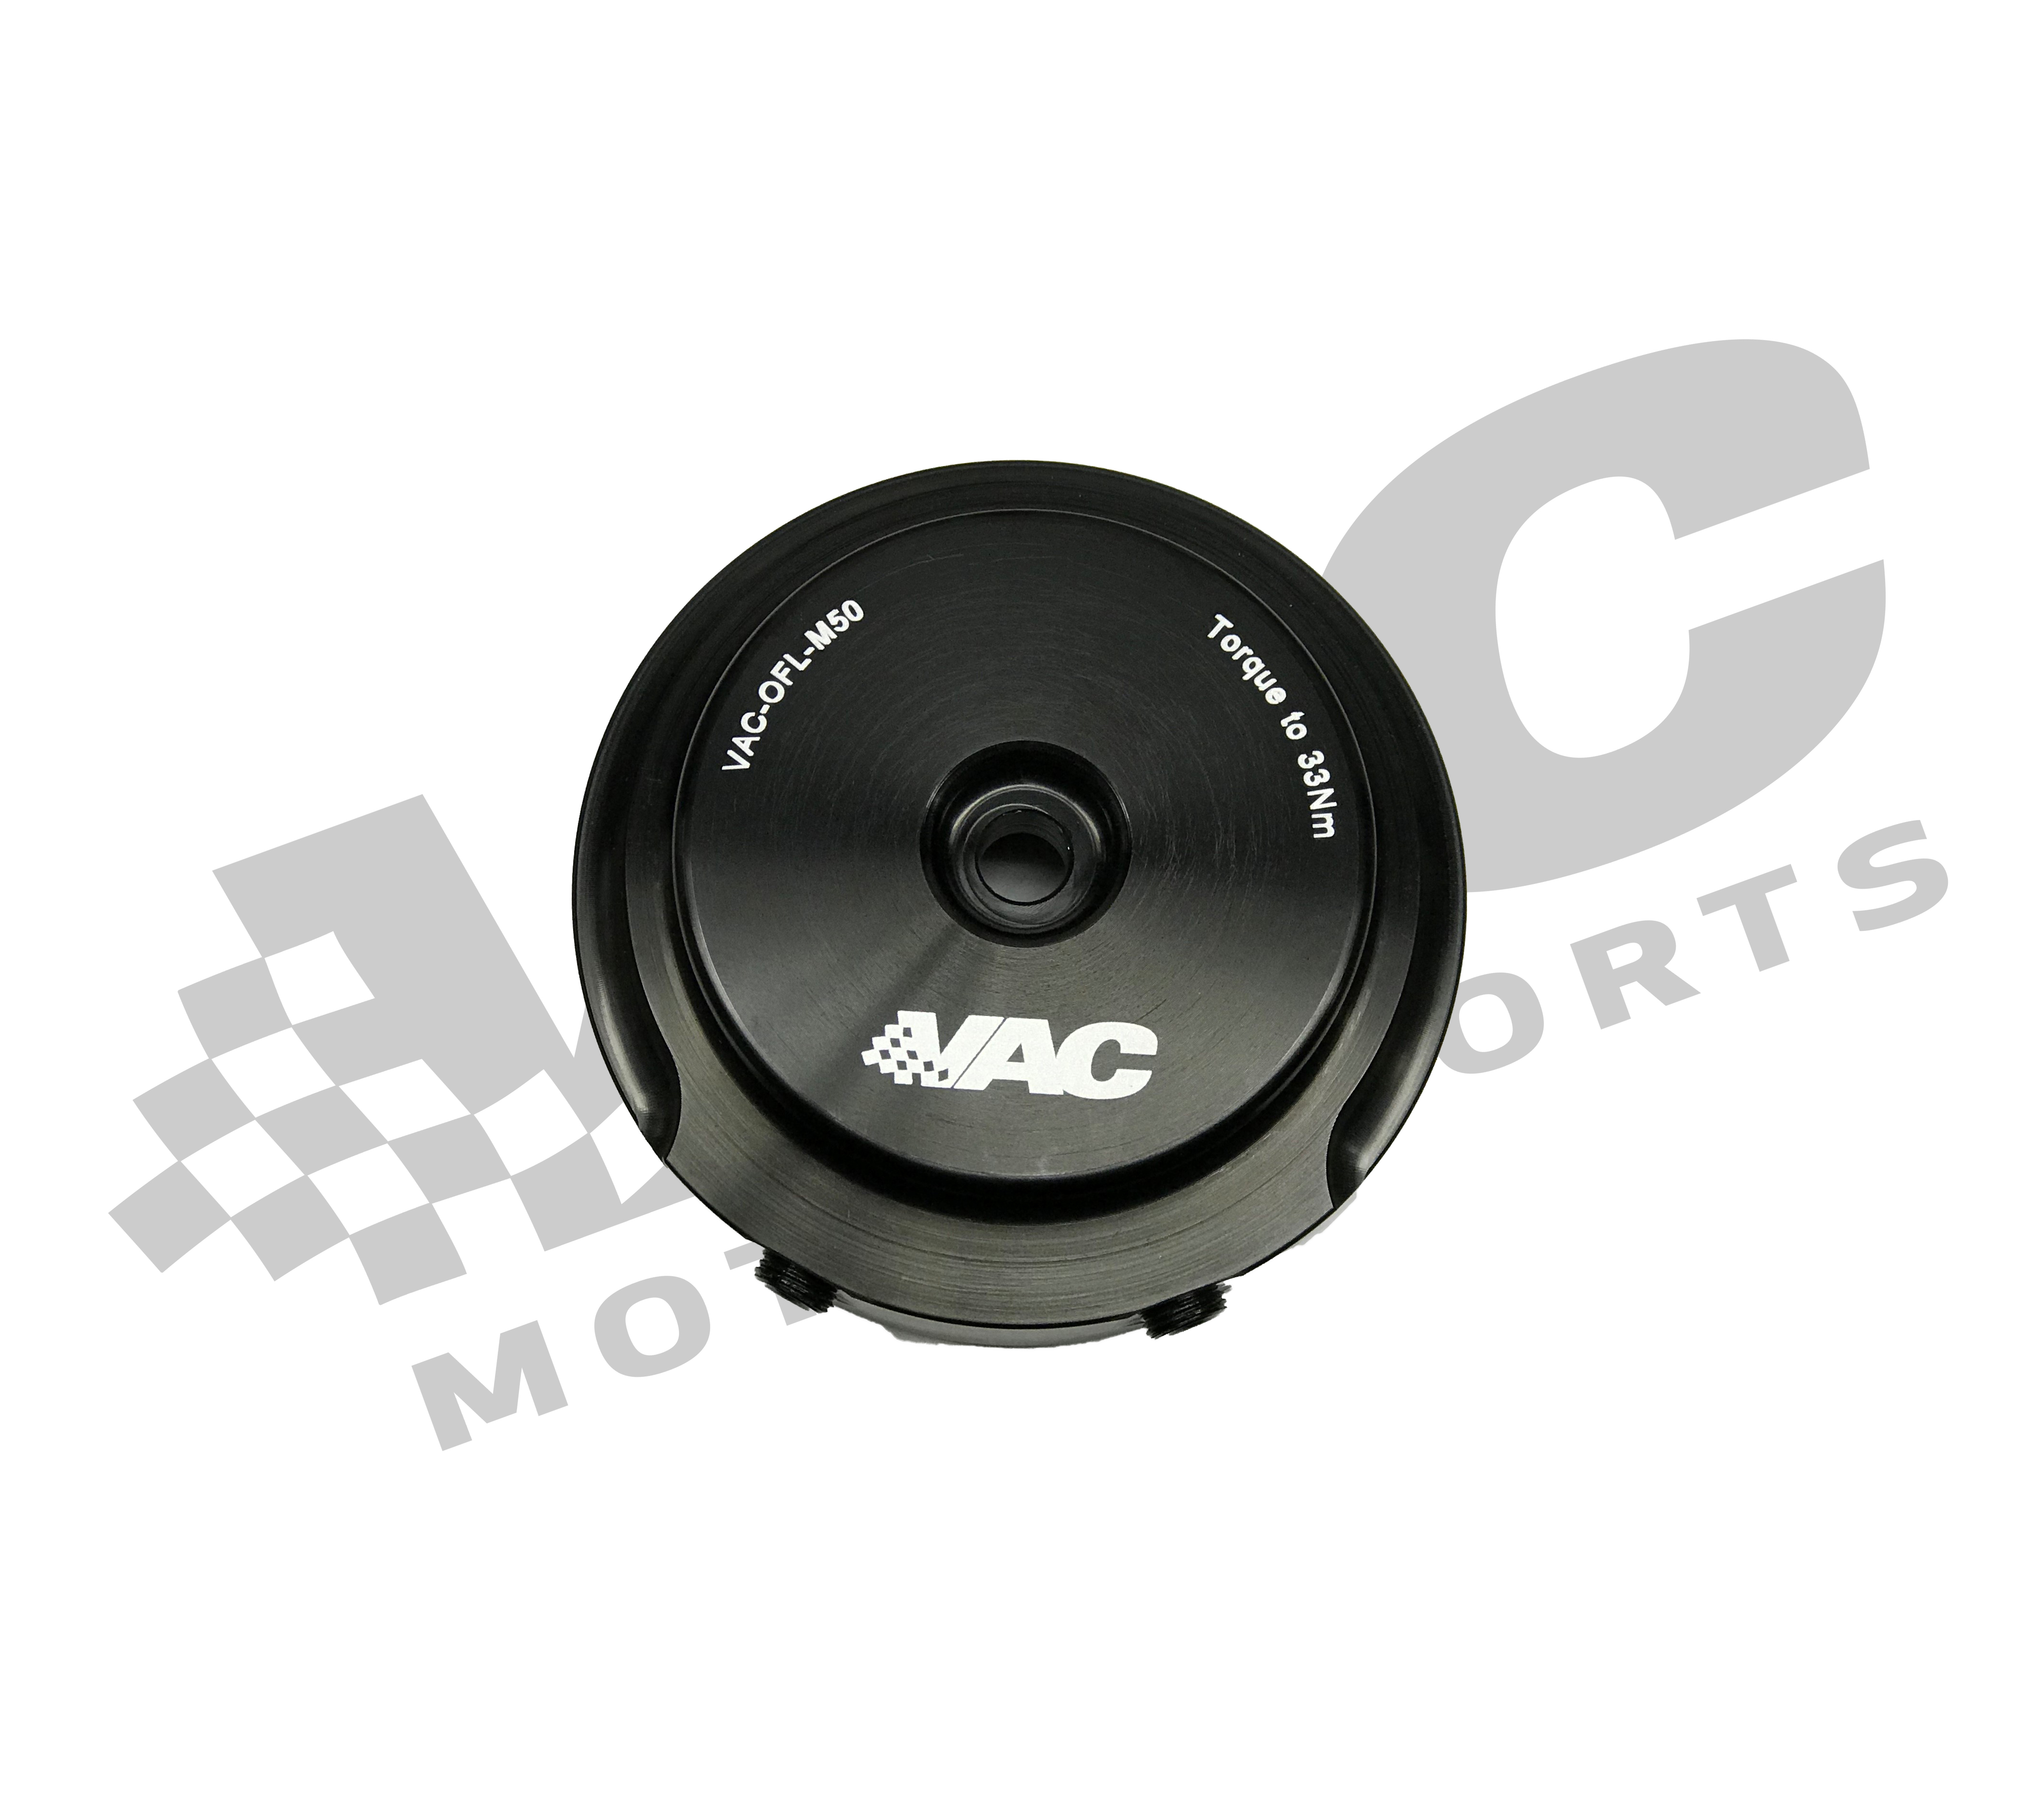 VAC Billet Oil Filter Lid w/Sensor Ports for BMW M50/M52/S50/S52/S50B30/S50B32/S54 SWATCH